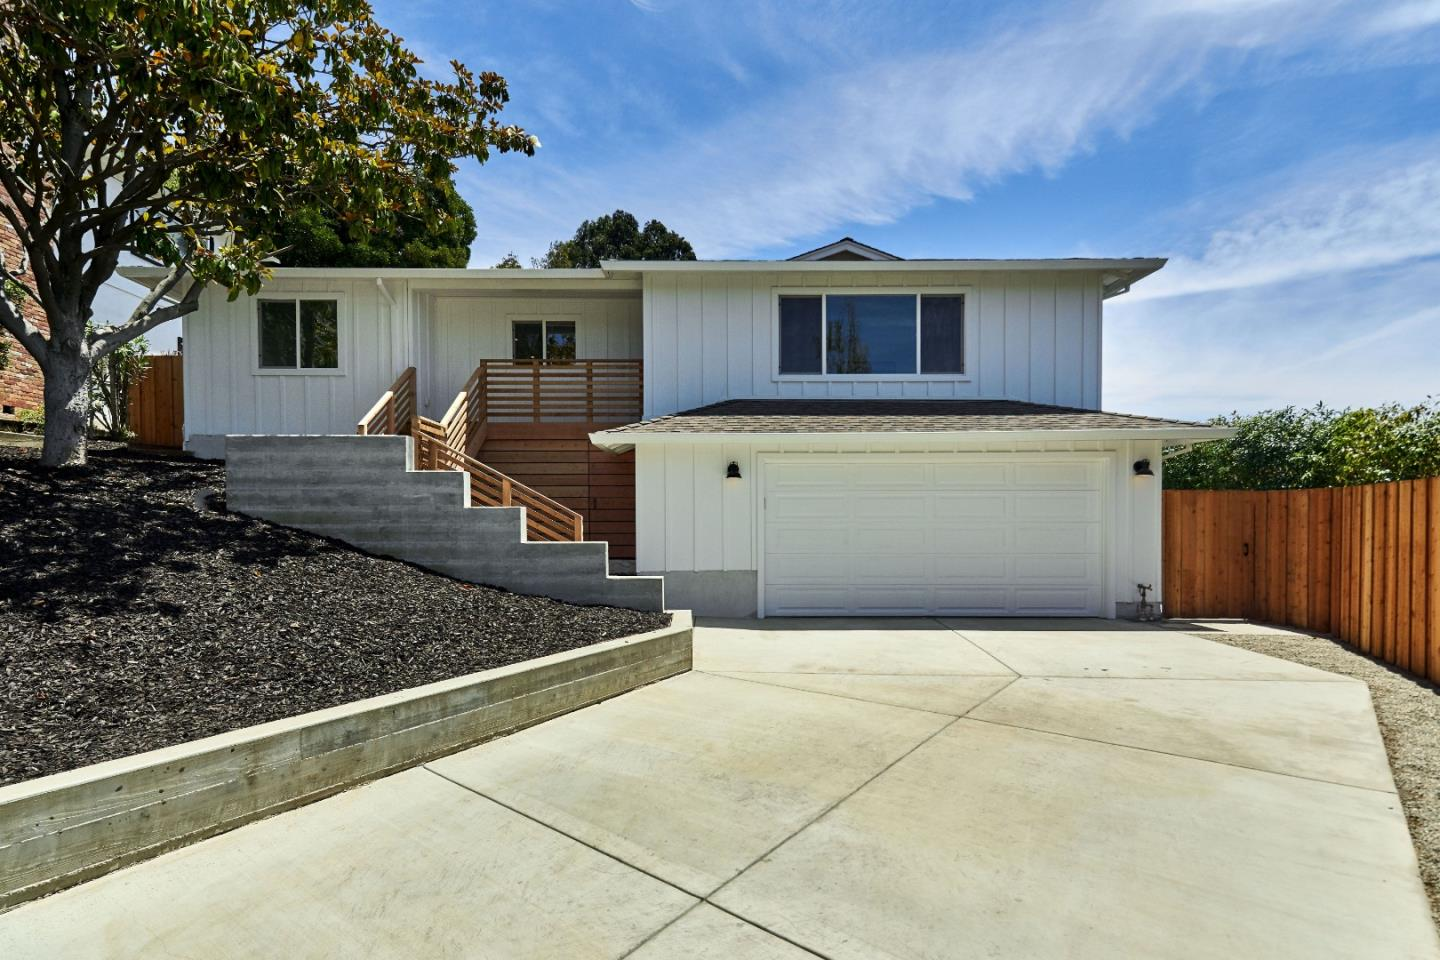 Image for 8433 Outlook Avenue, <br>Oakland 94605